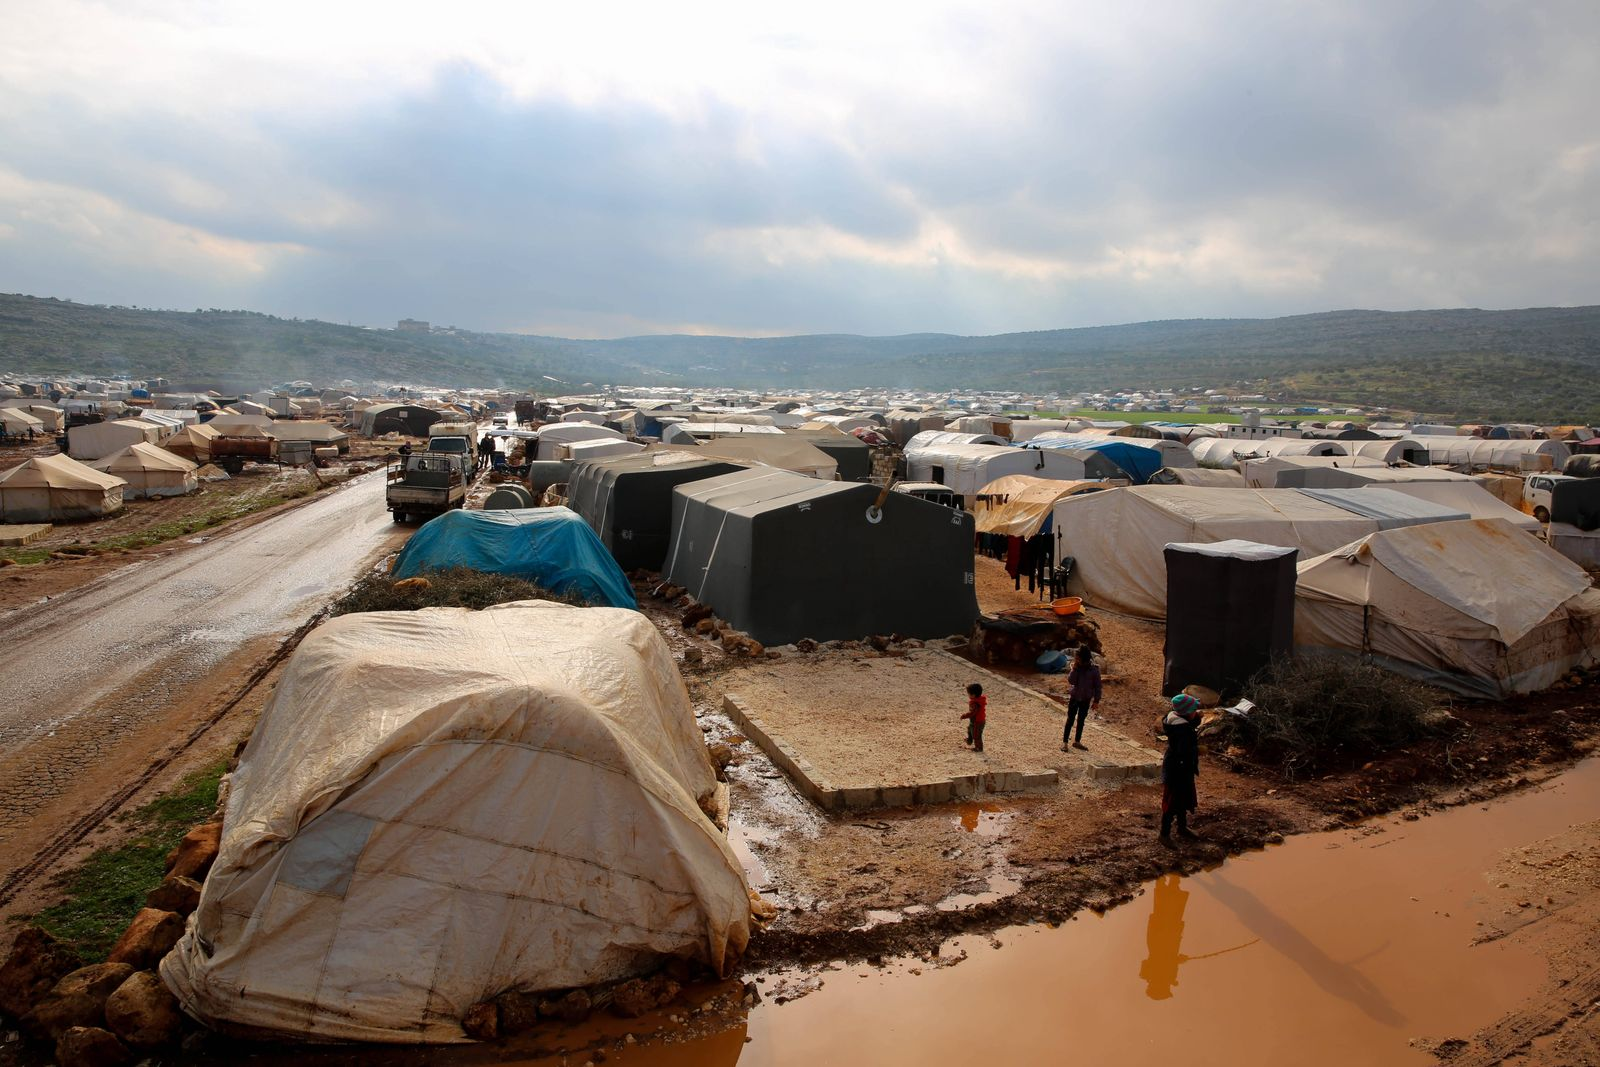 January 19, 2021: Idlib, Syria. 19 January 2021. Children are exposed to the harsh weather conditions and flooding in a